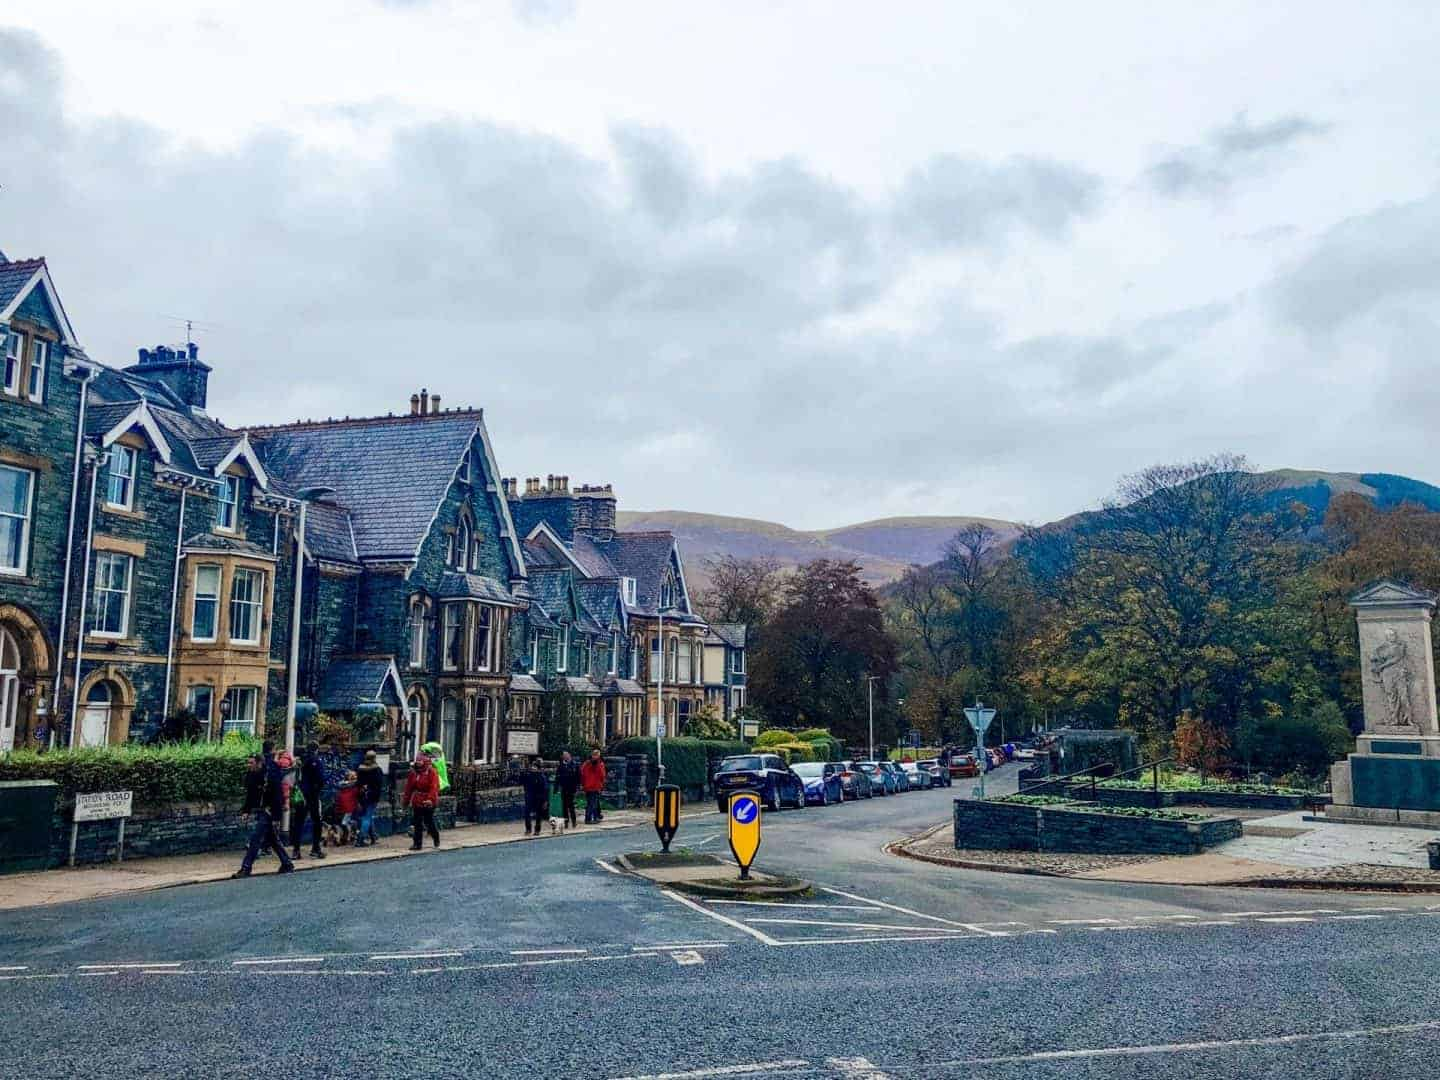 old houses in keswick, cumbria